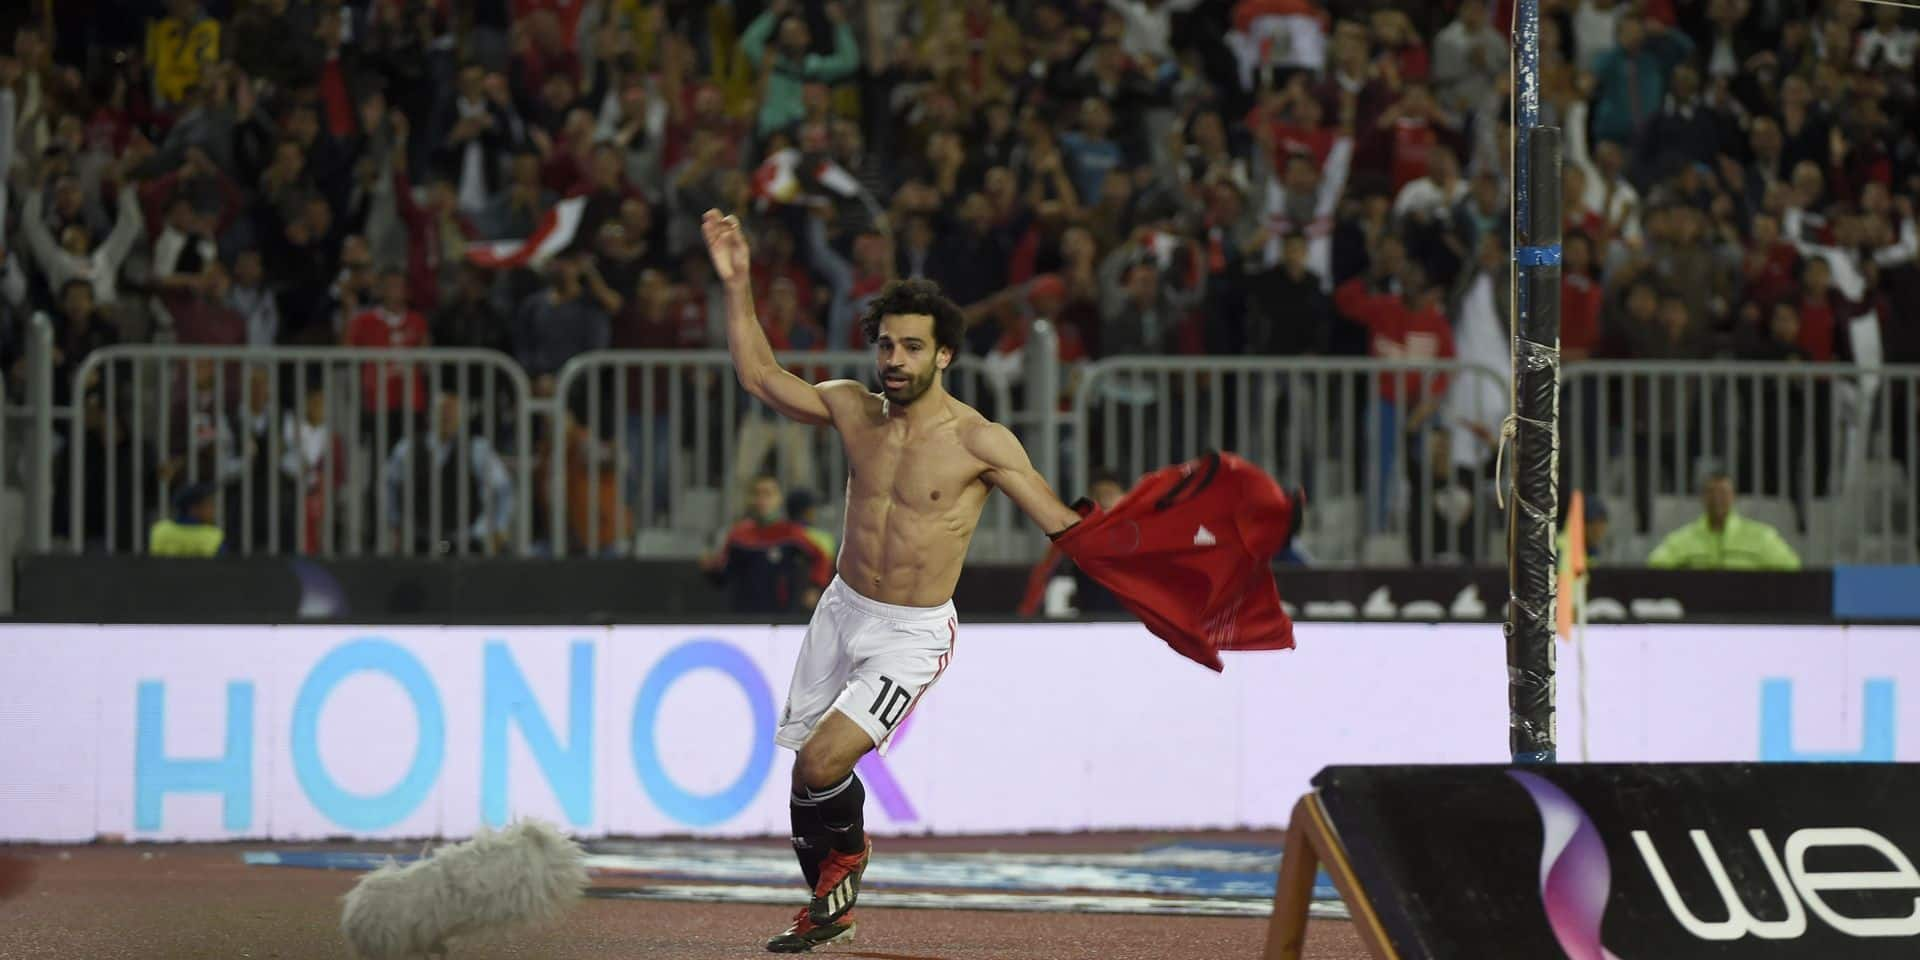 Egypt's forward Mohamed Salah (L) celebrates after scoring a goal during the Africa Cup of Nations qualifier football match Egypt vs Tunisia at the Borg El Arab Stadium, near Alexandria, on November 16, 2018. (Photo by KHALED DESOUKI / AFP)